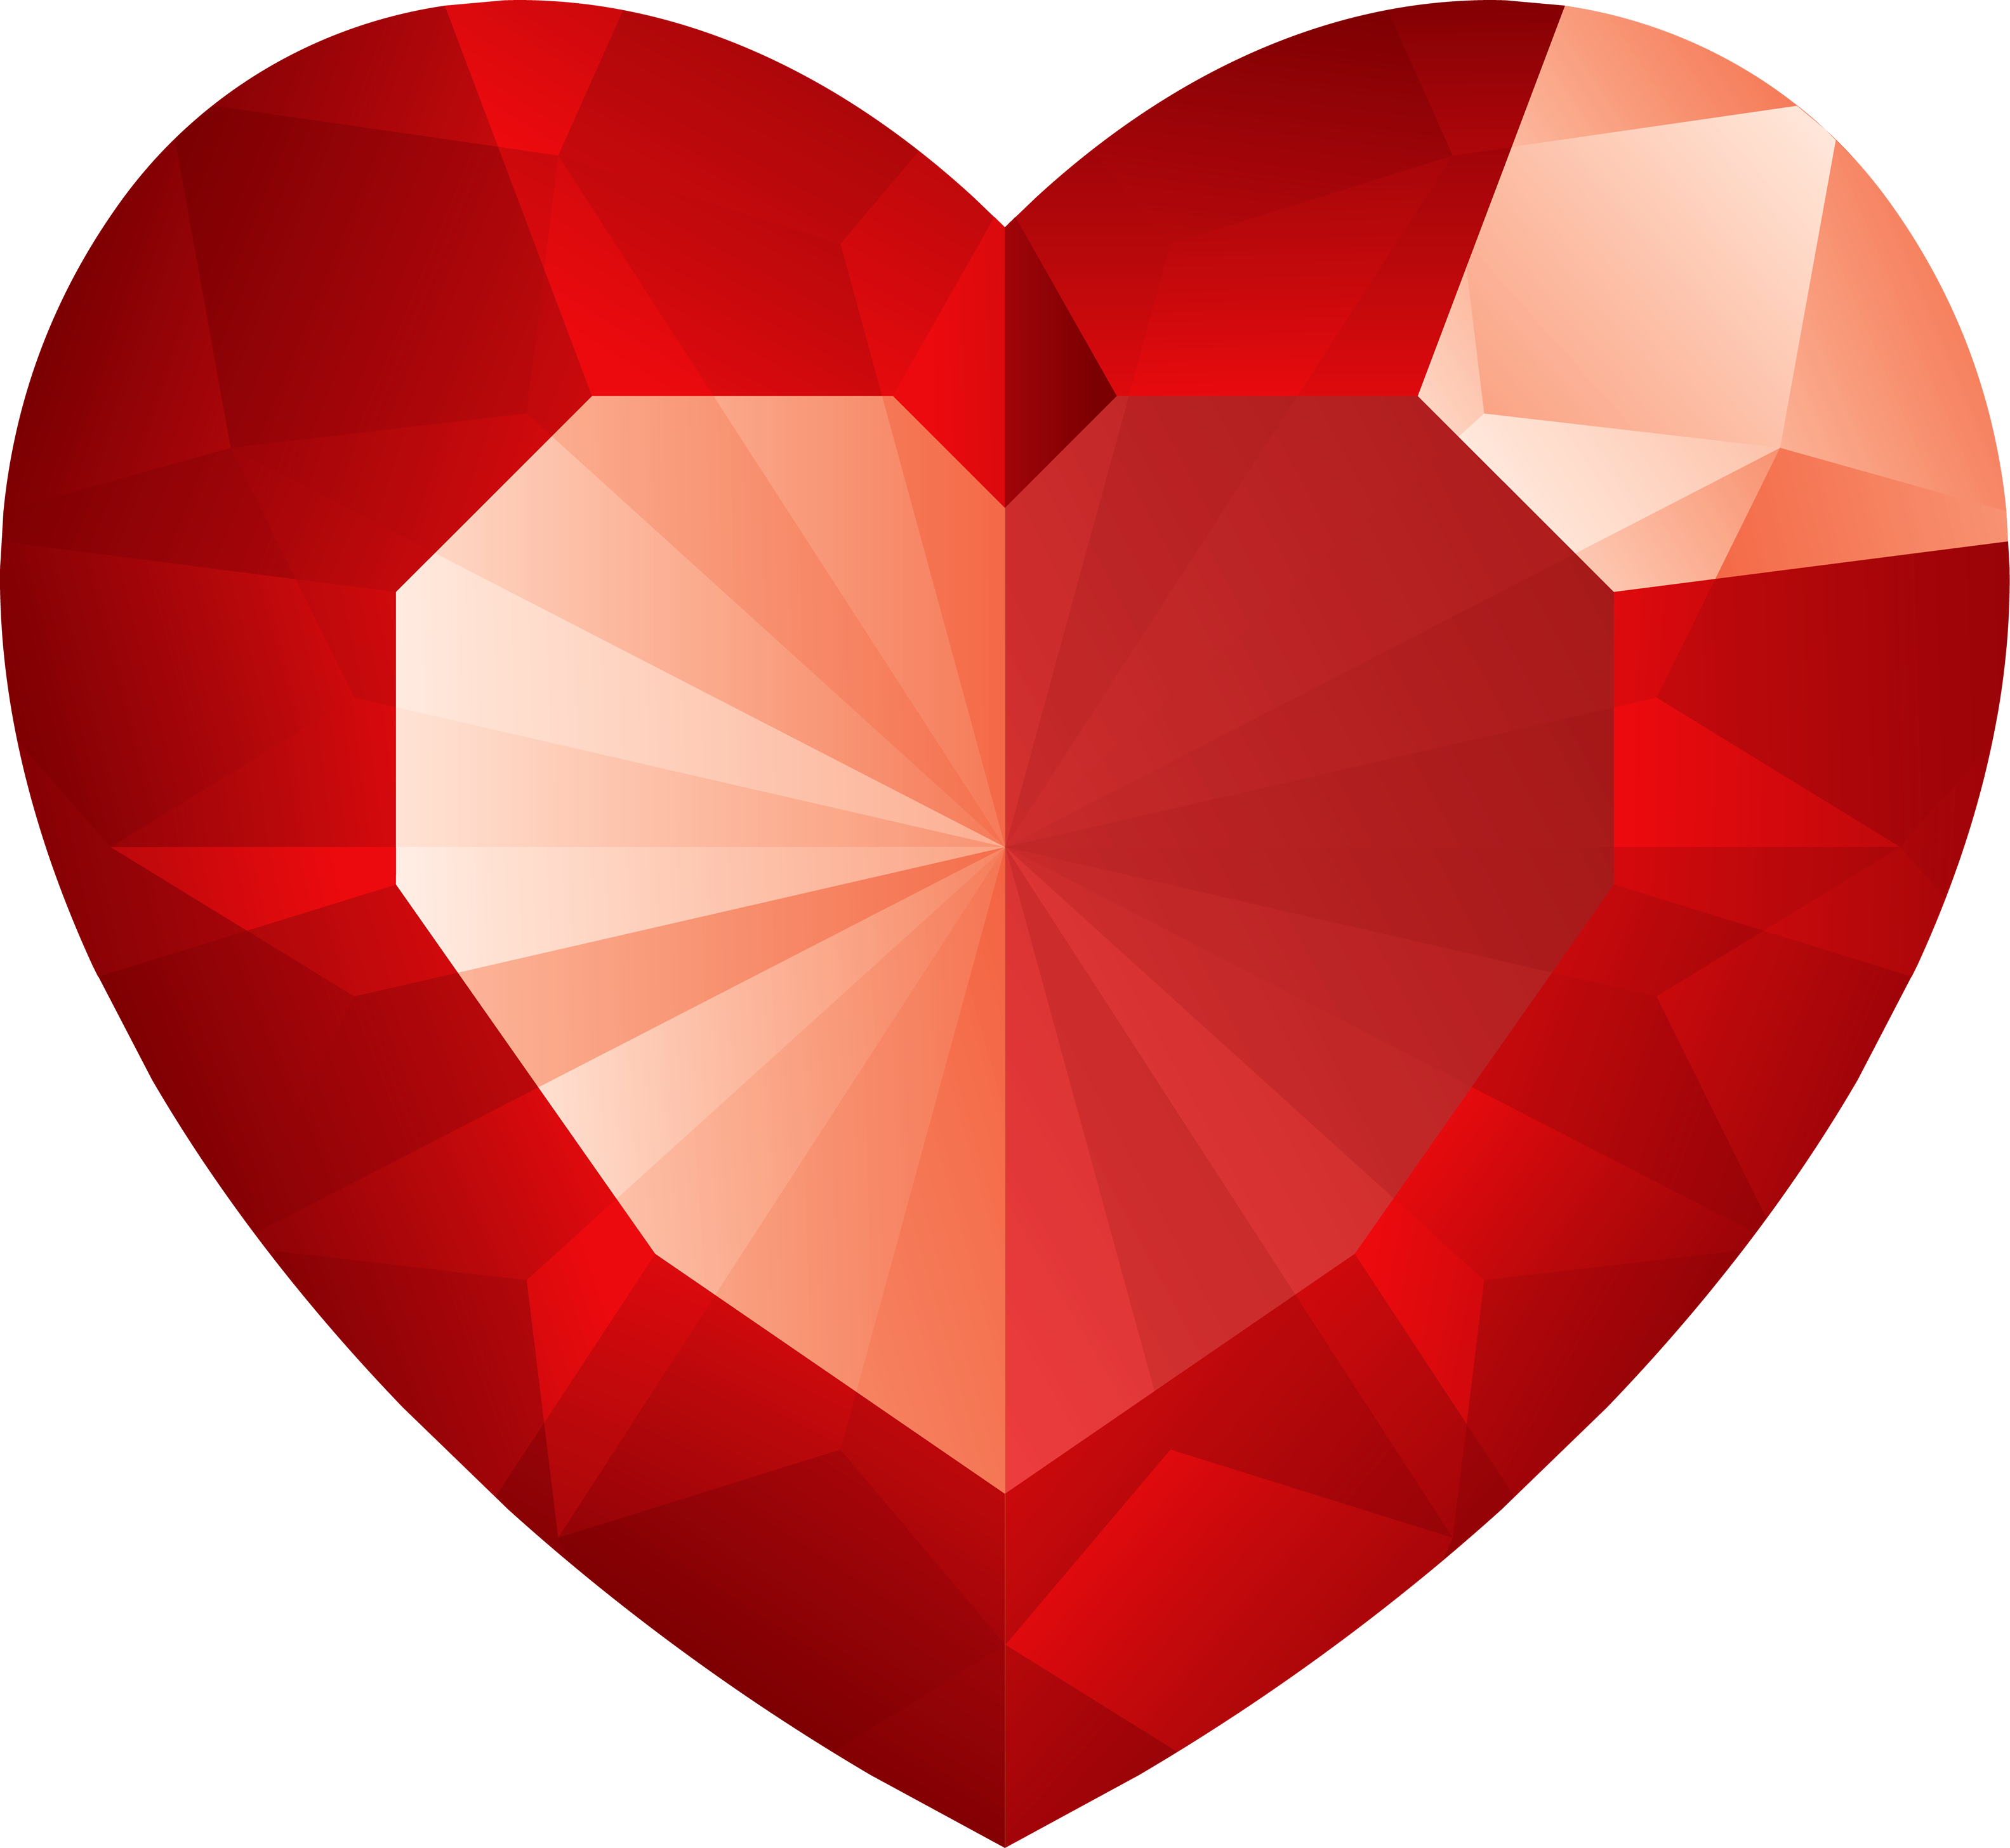 Heart PNG free images, download.